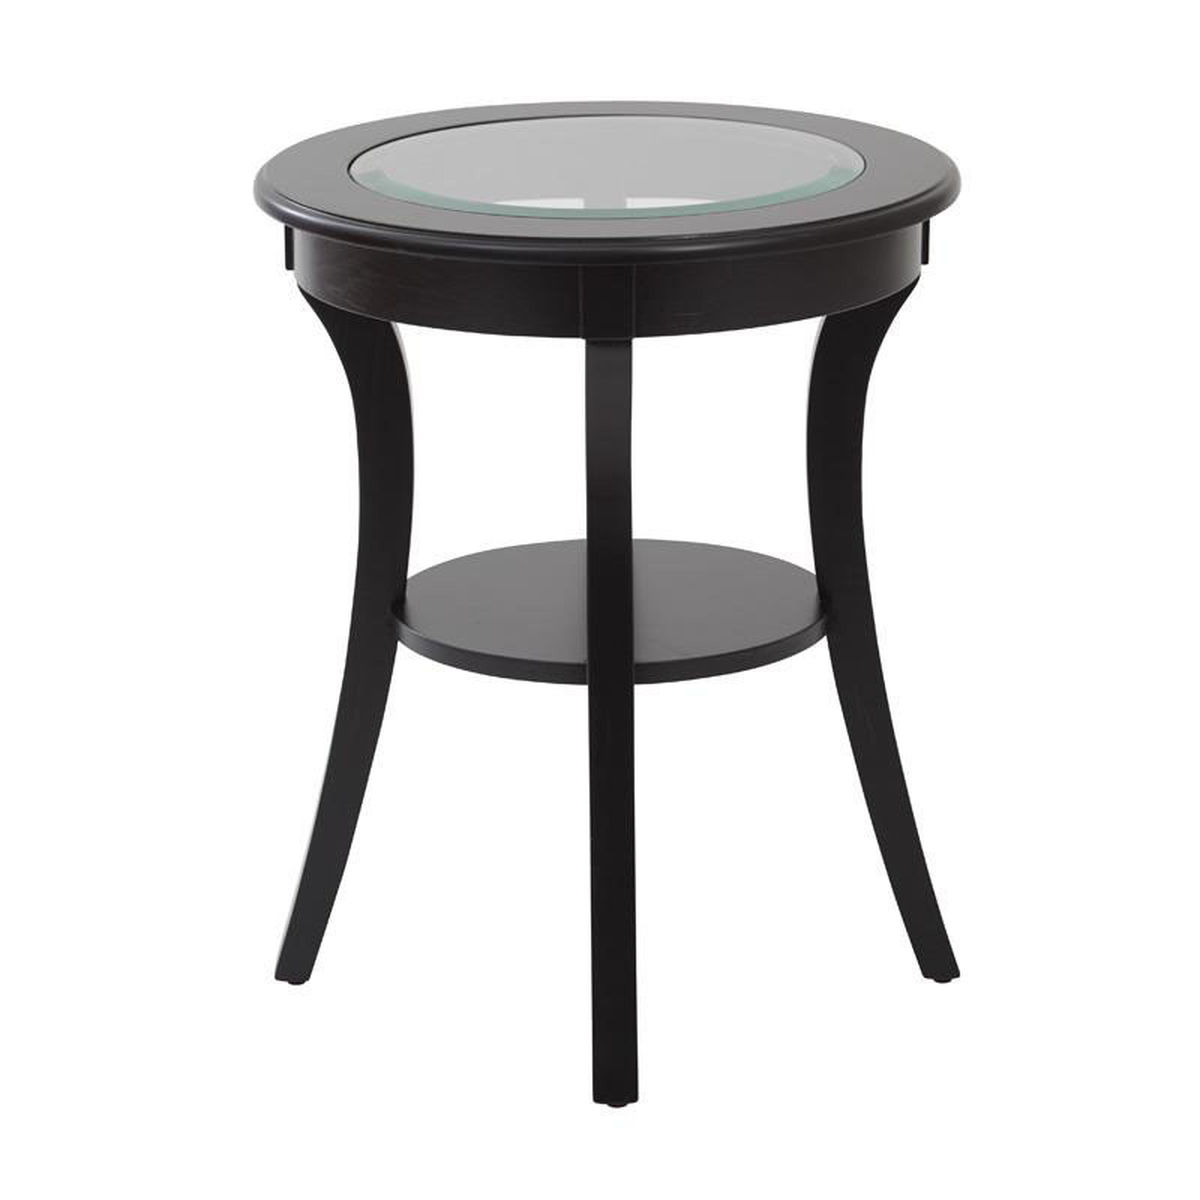 harper black glass accent table bizchair office star products round top our osp designs with wood finish and shelf target standing lamp end power station velocity furniture tro